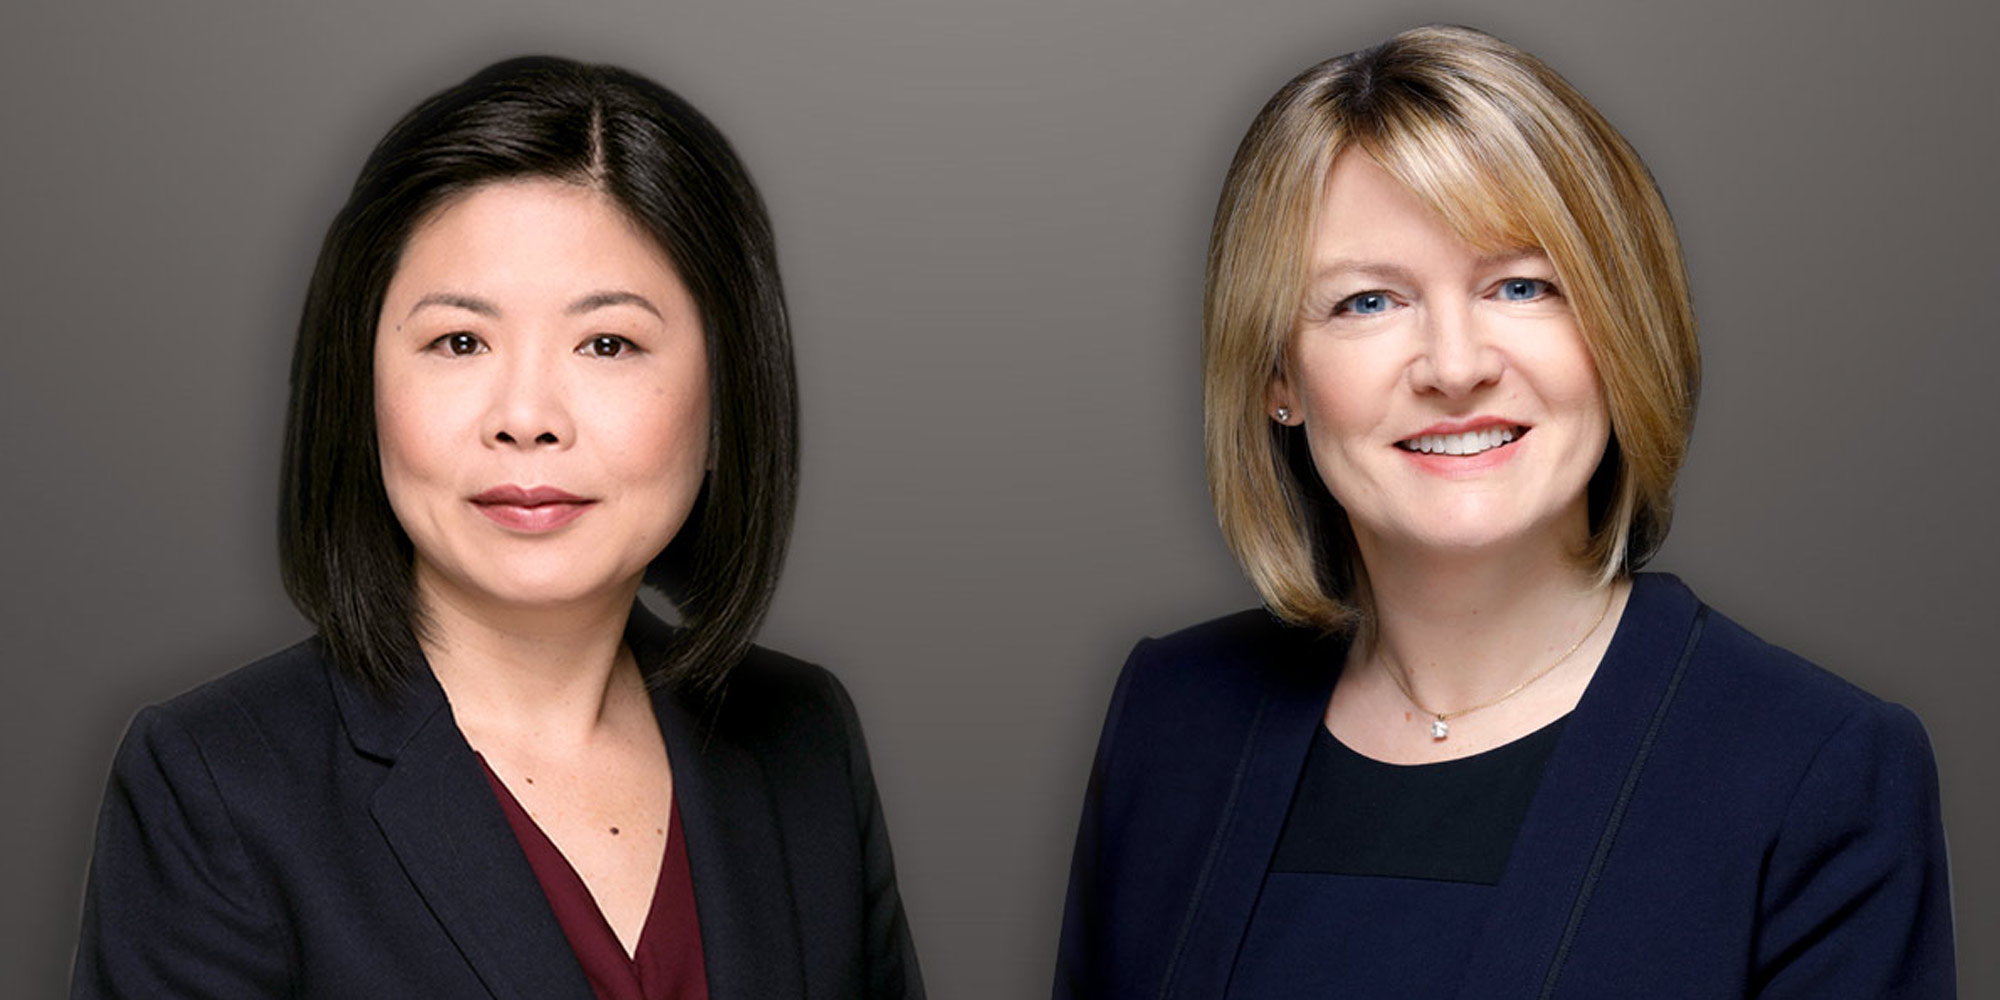 Hwee Chin Neo, Business Manager (left) and Kate Philips, Managing Director (right)